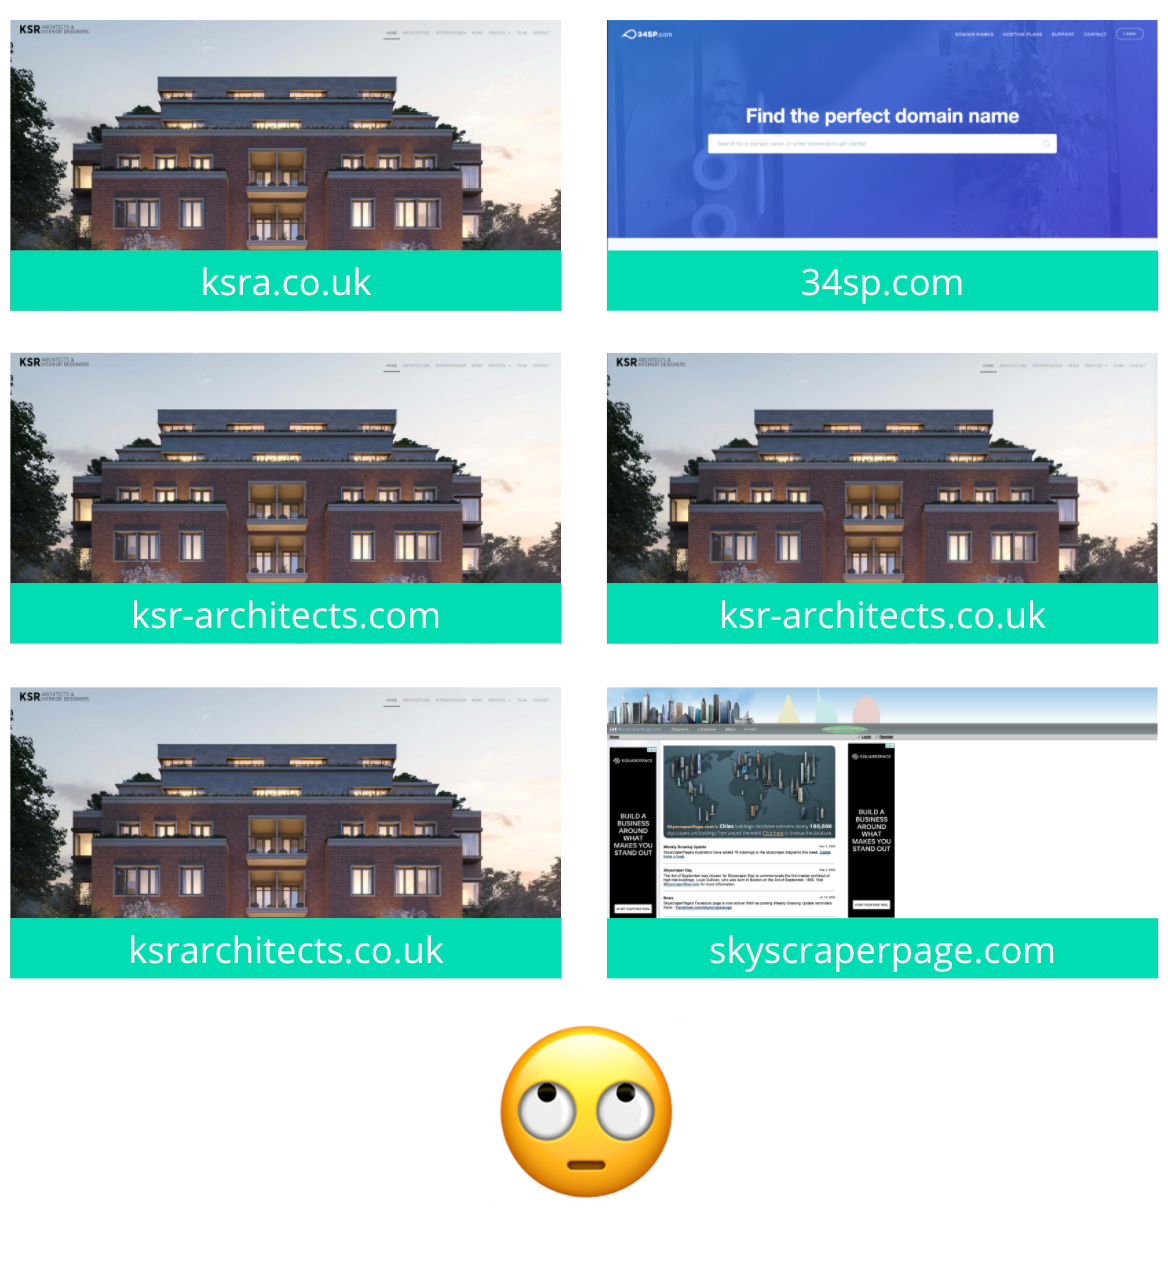 website analysis architecture firm murray dare marketing consultancy 12